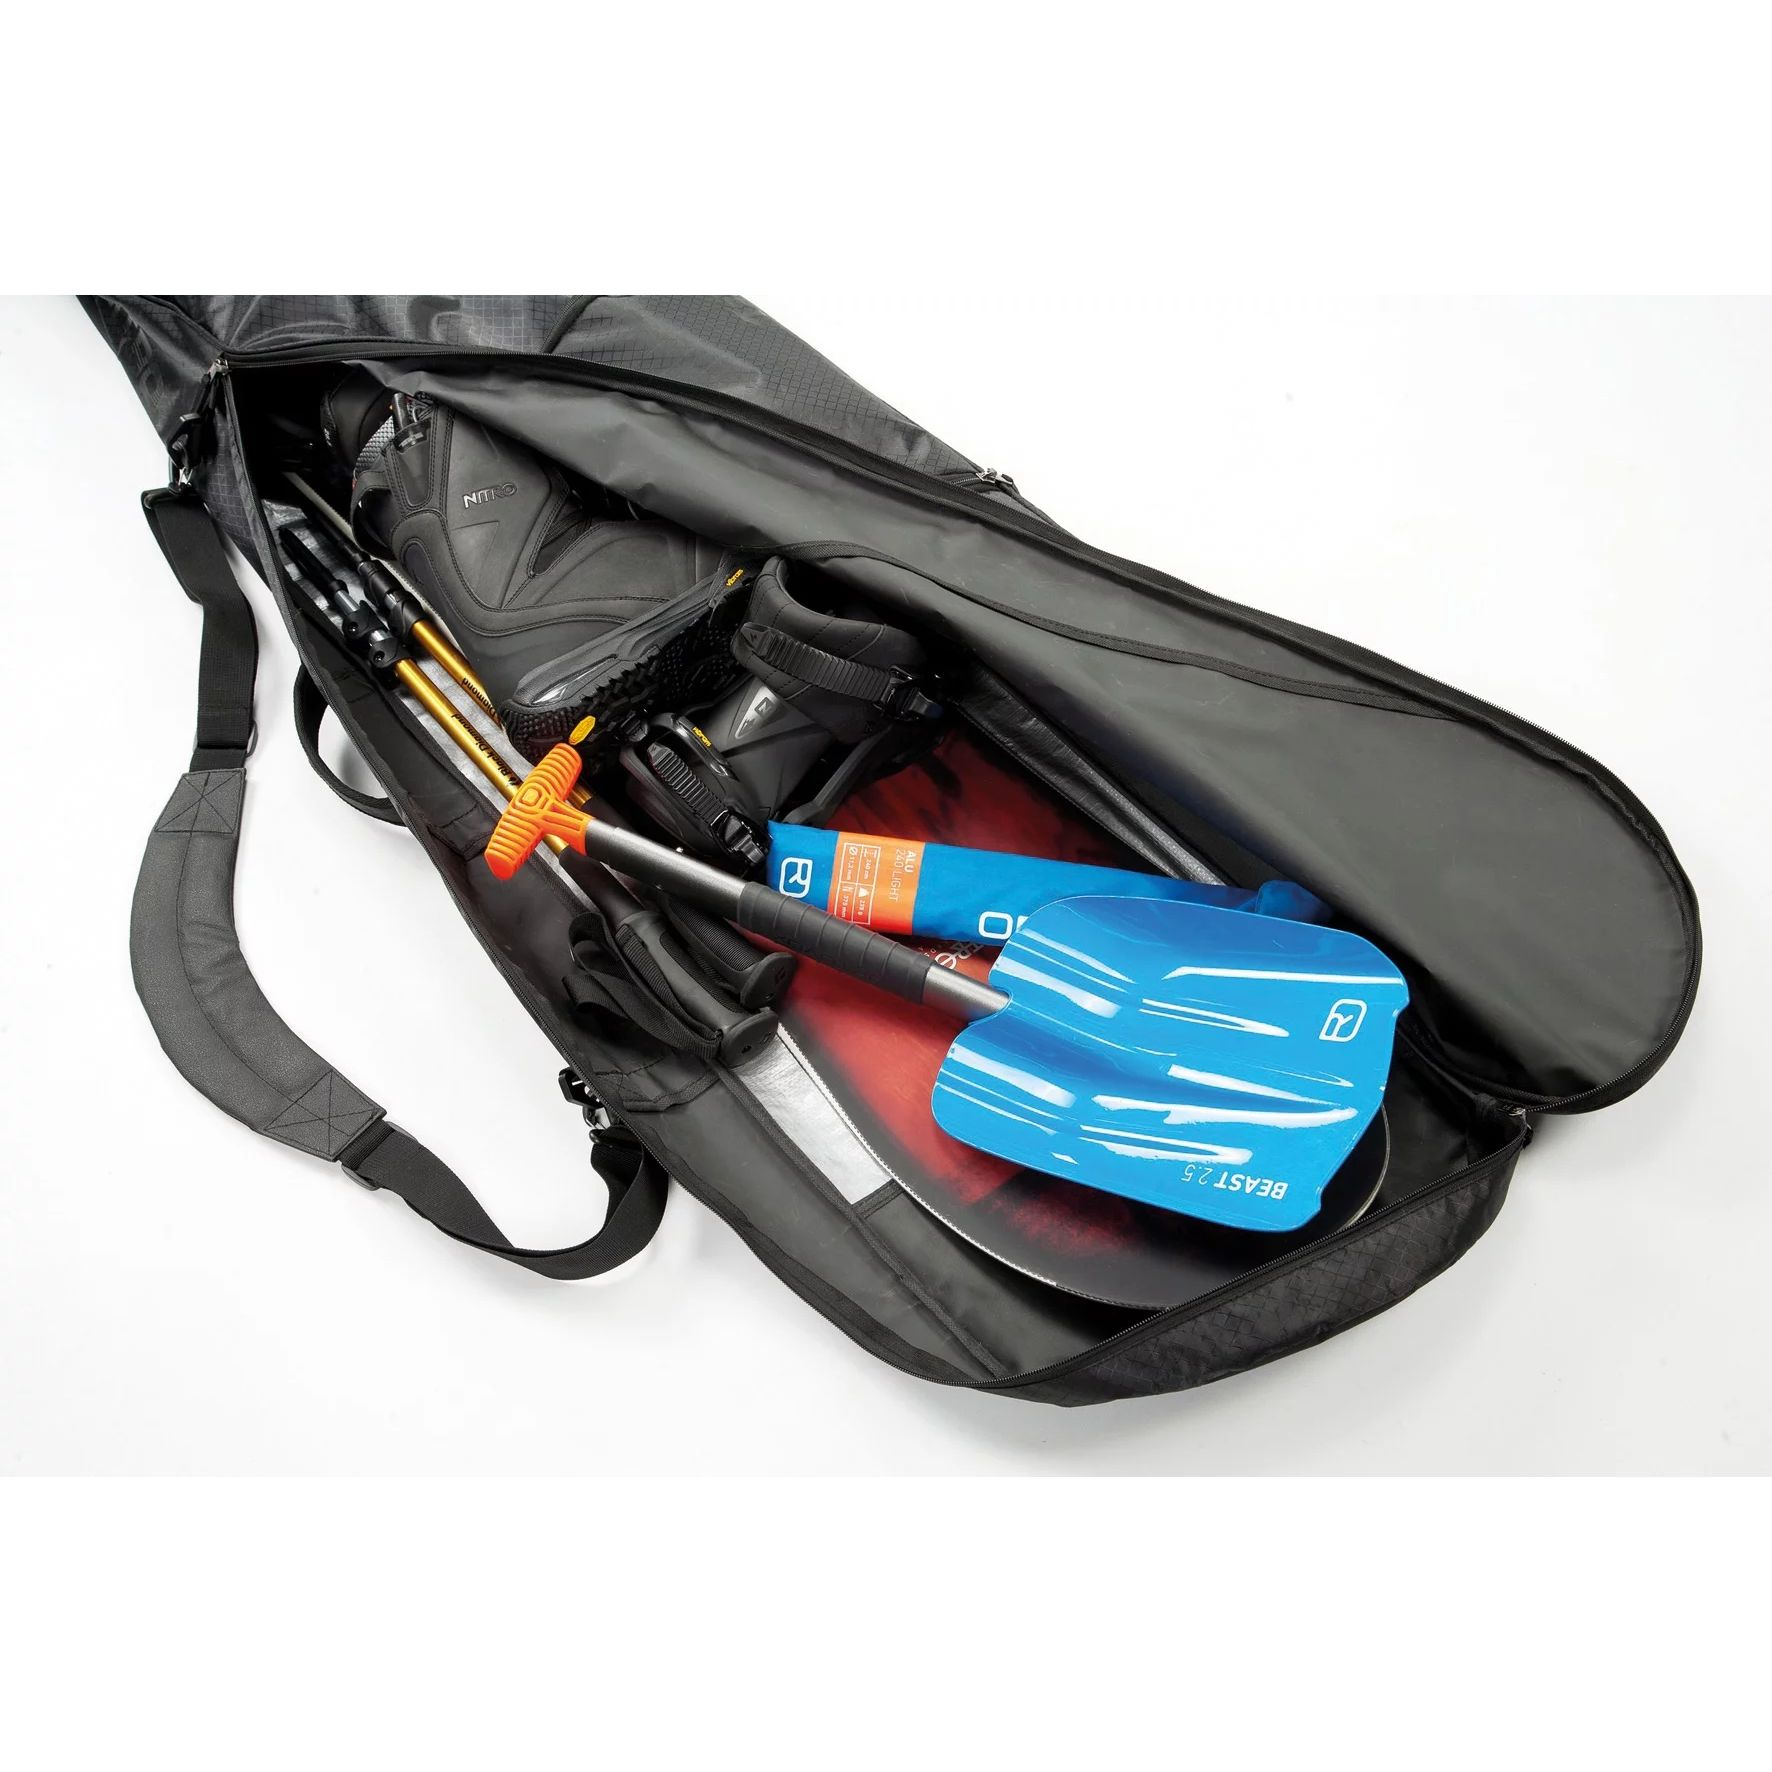 Huse Ski & Snow -  nitro Sub Board Bag 165